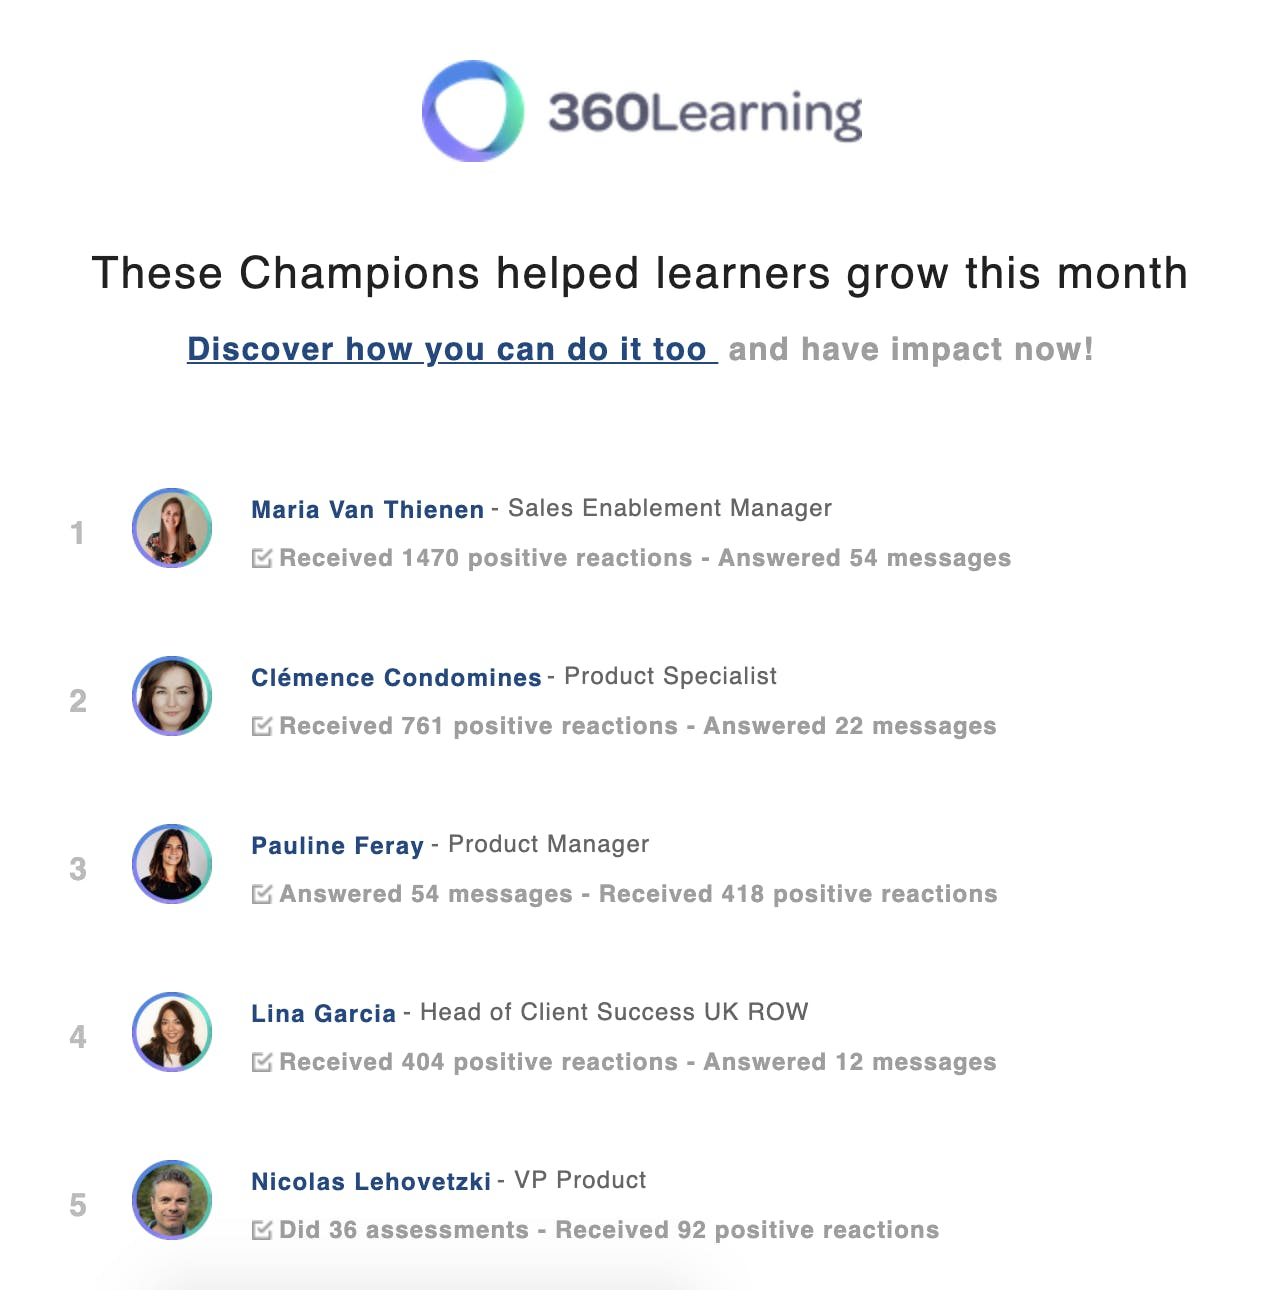 A monthly notification email sent from the 360Learning platform